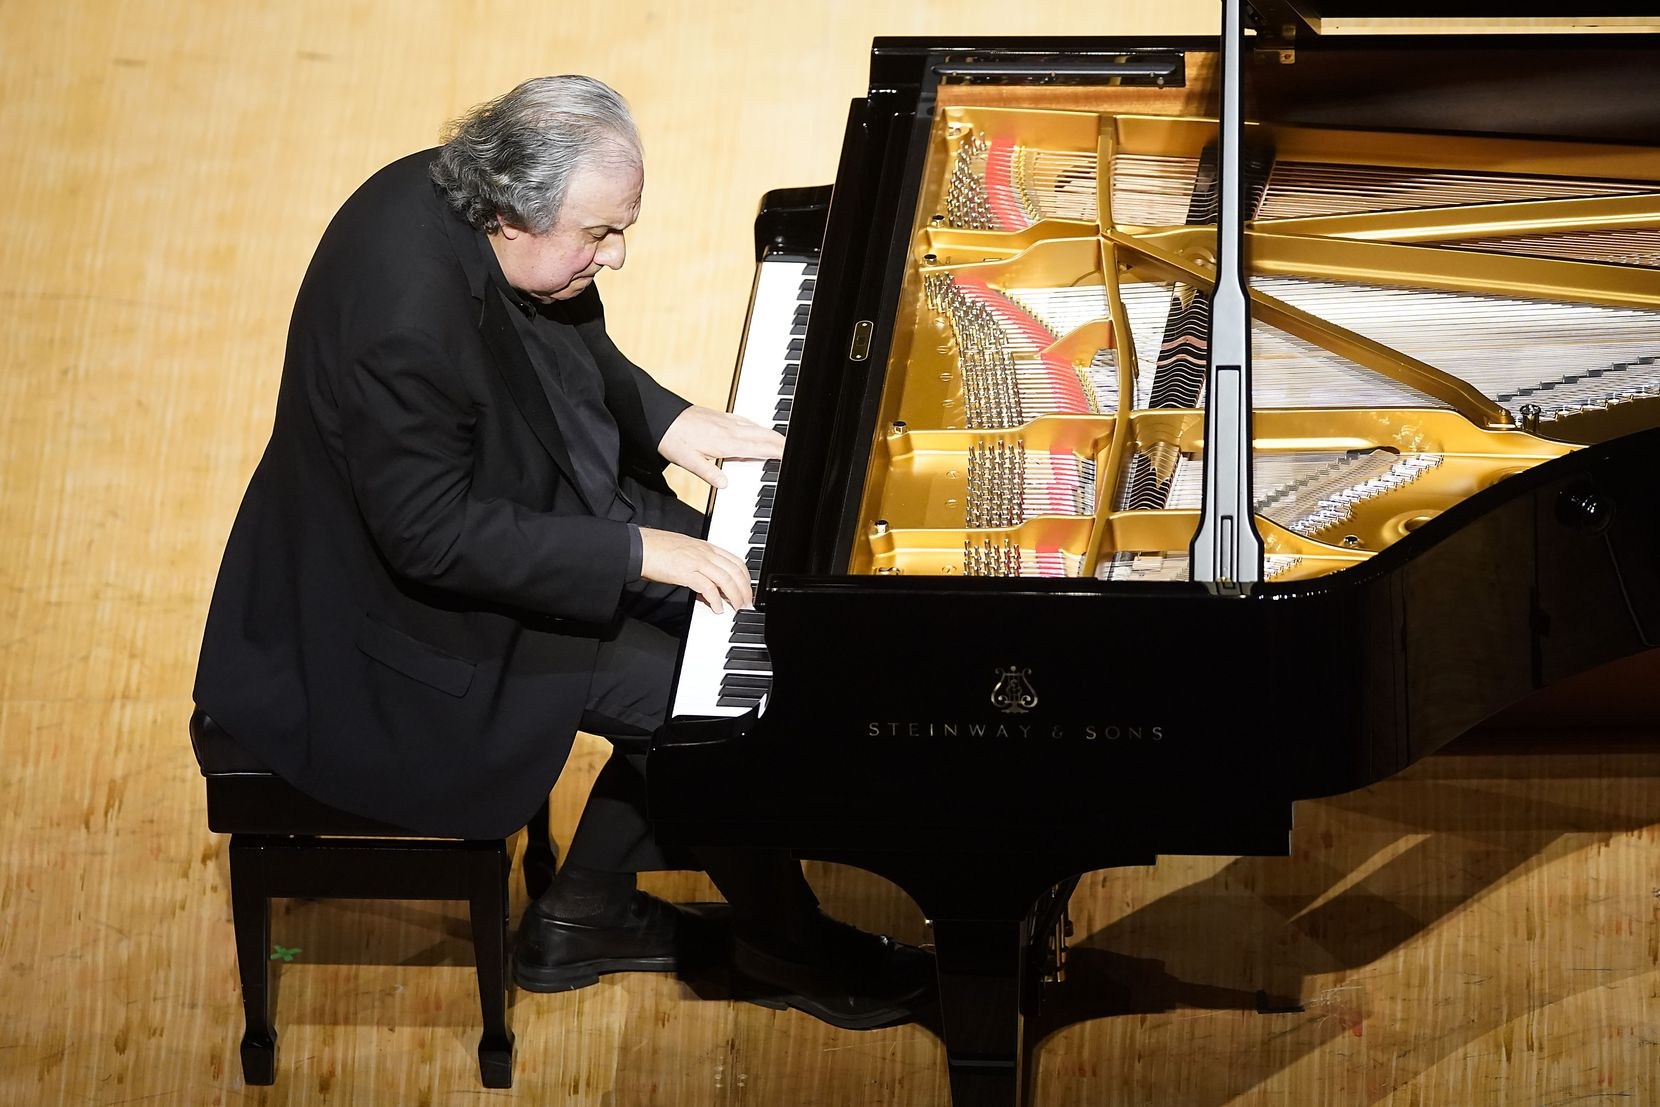 Pianist Yefim Bronfman performs during the season-opening Dallas Symphony concert at the Meyerson Symphony Center on Thursday, Sept. 10, 2020, in Dallas.